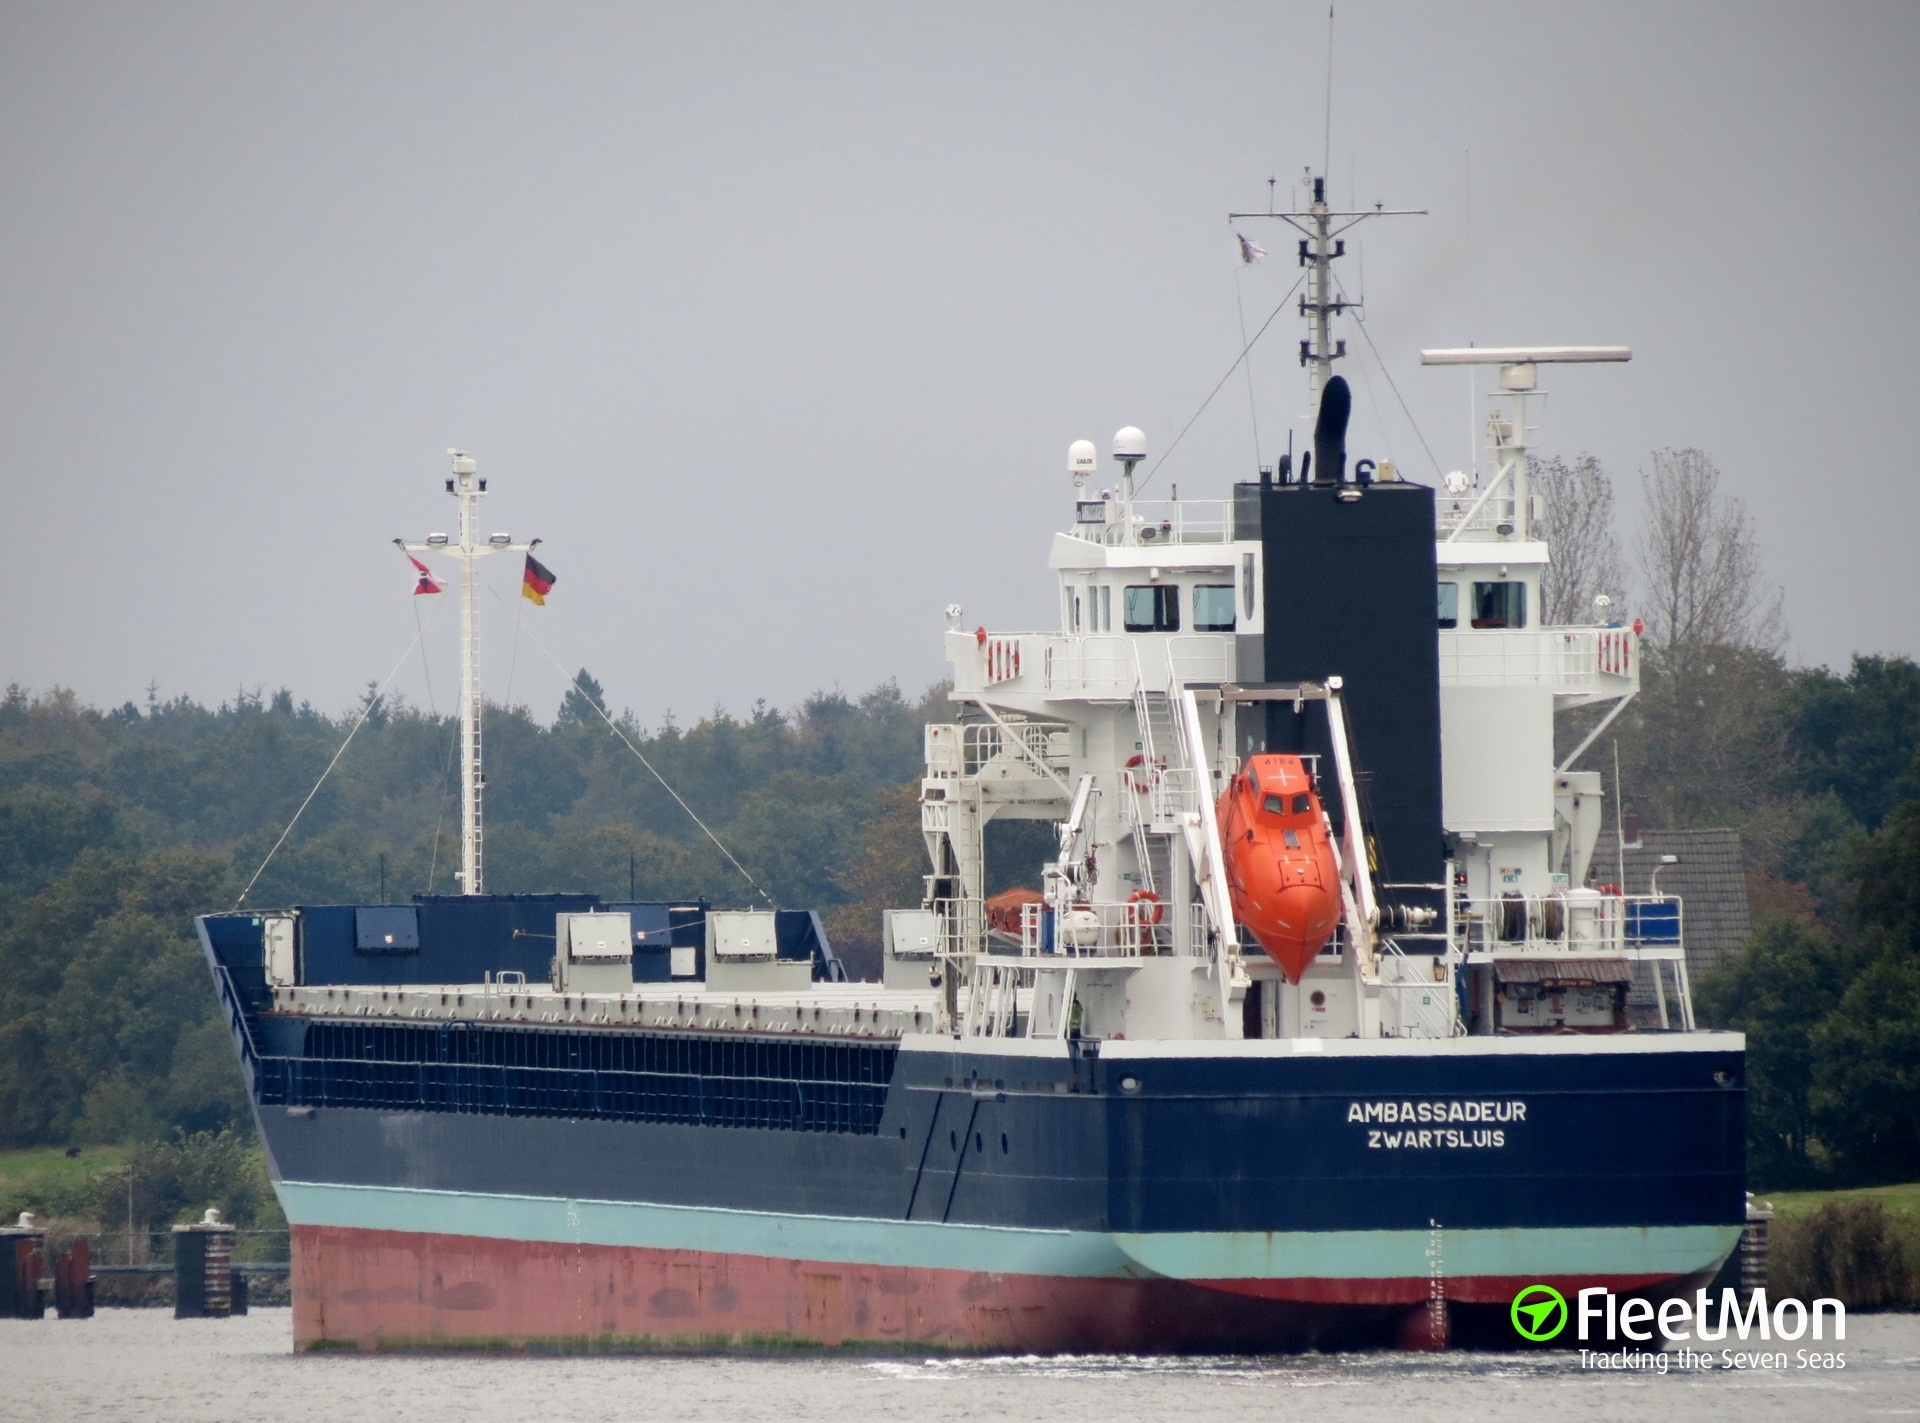 Dutch freighter Ambassadeur sunk French trawler Loïc Lucas in collision, English Canal